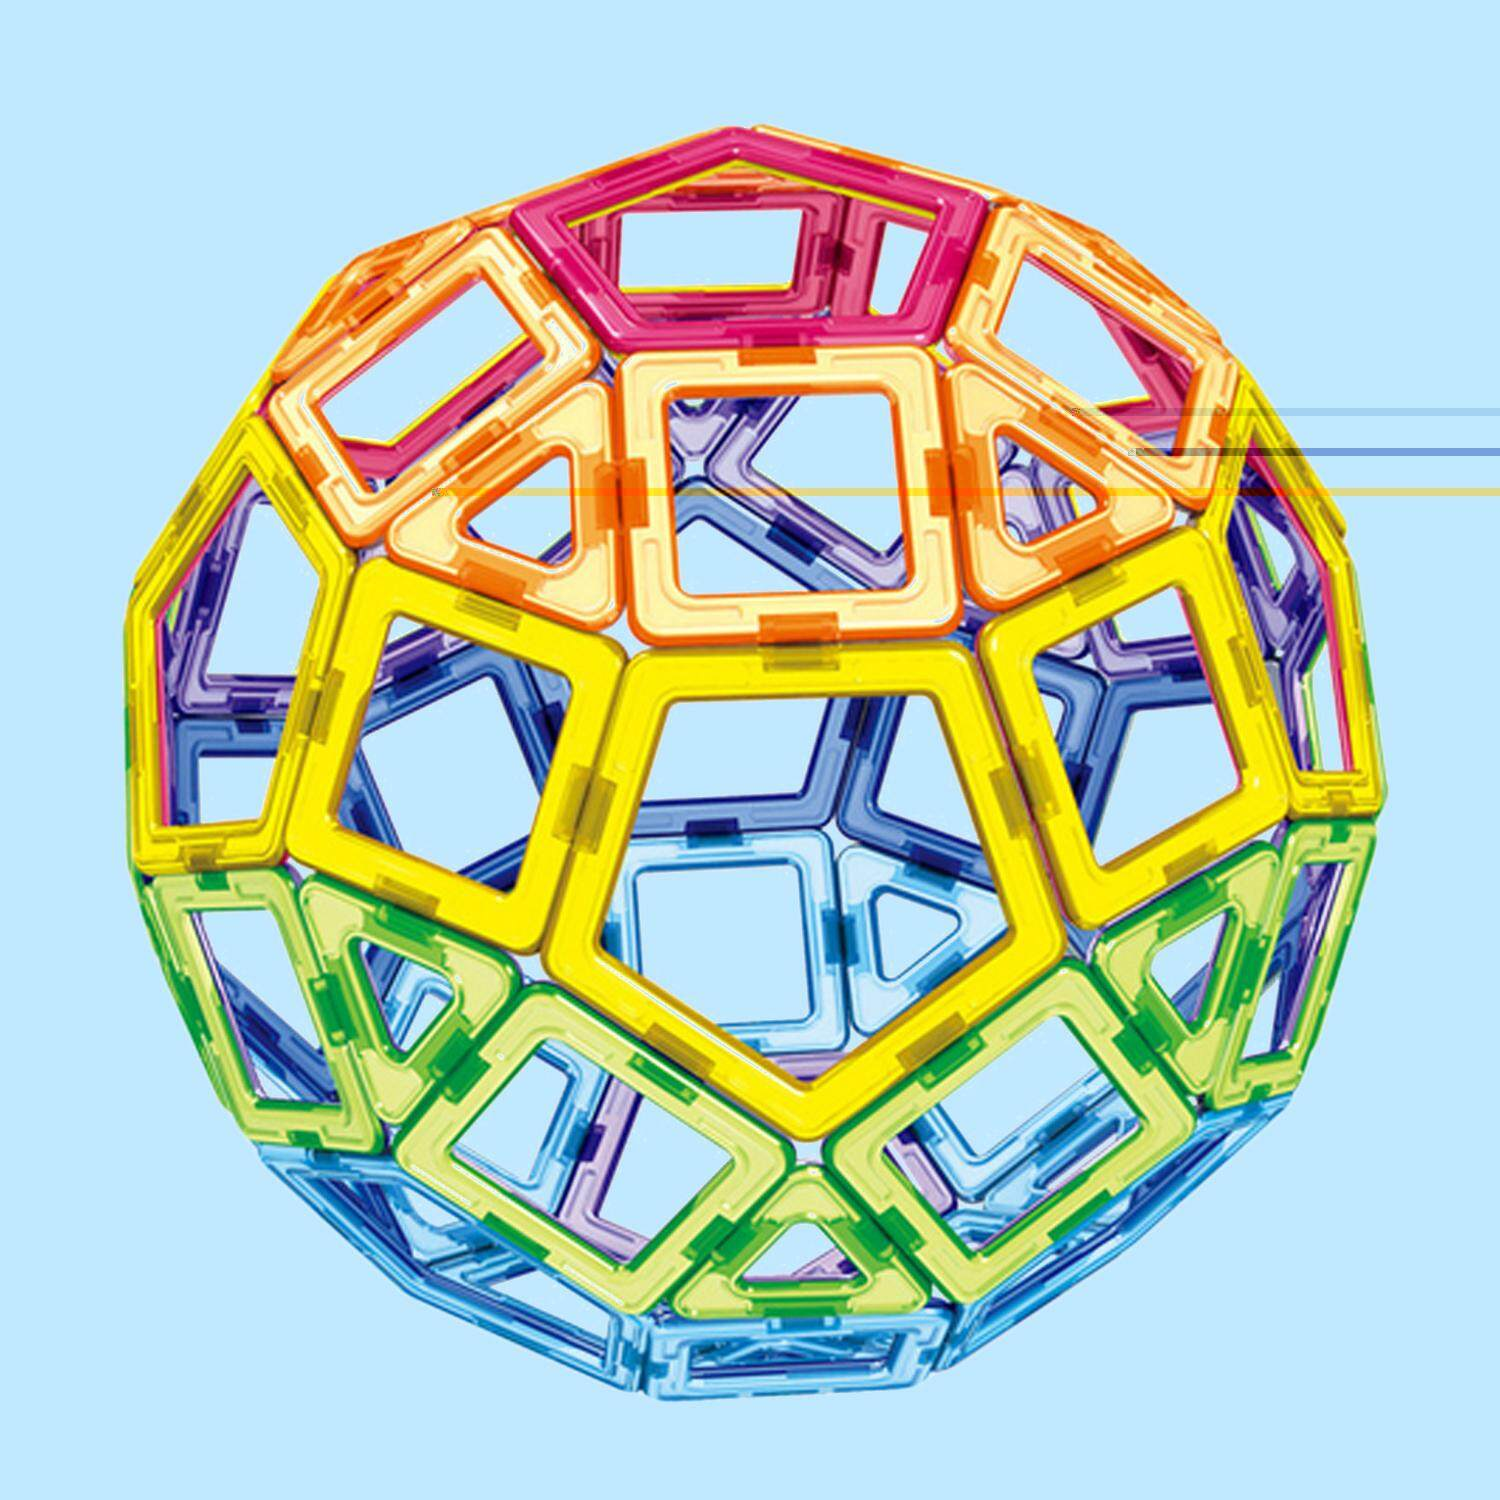 62 Pcs Triangle Square Pentagon Magnetic Building Blocks Parts 3d Educational Toy Birthday Children Day Gift - Intl By Elek.